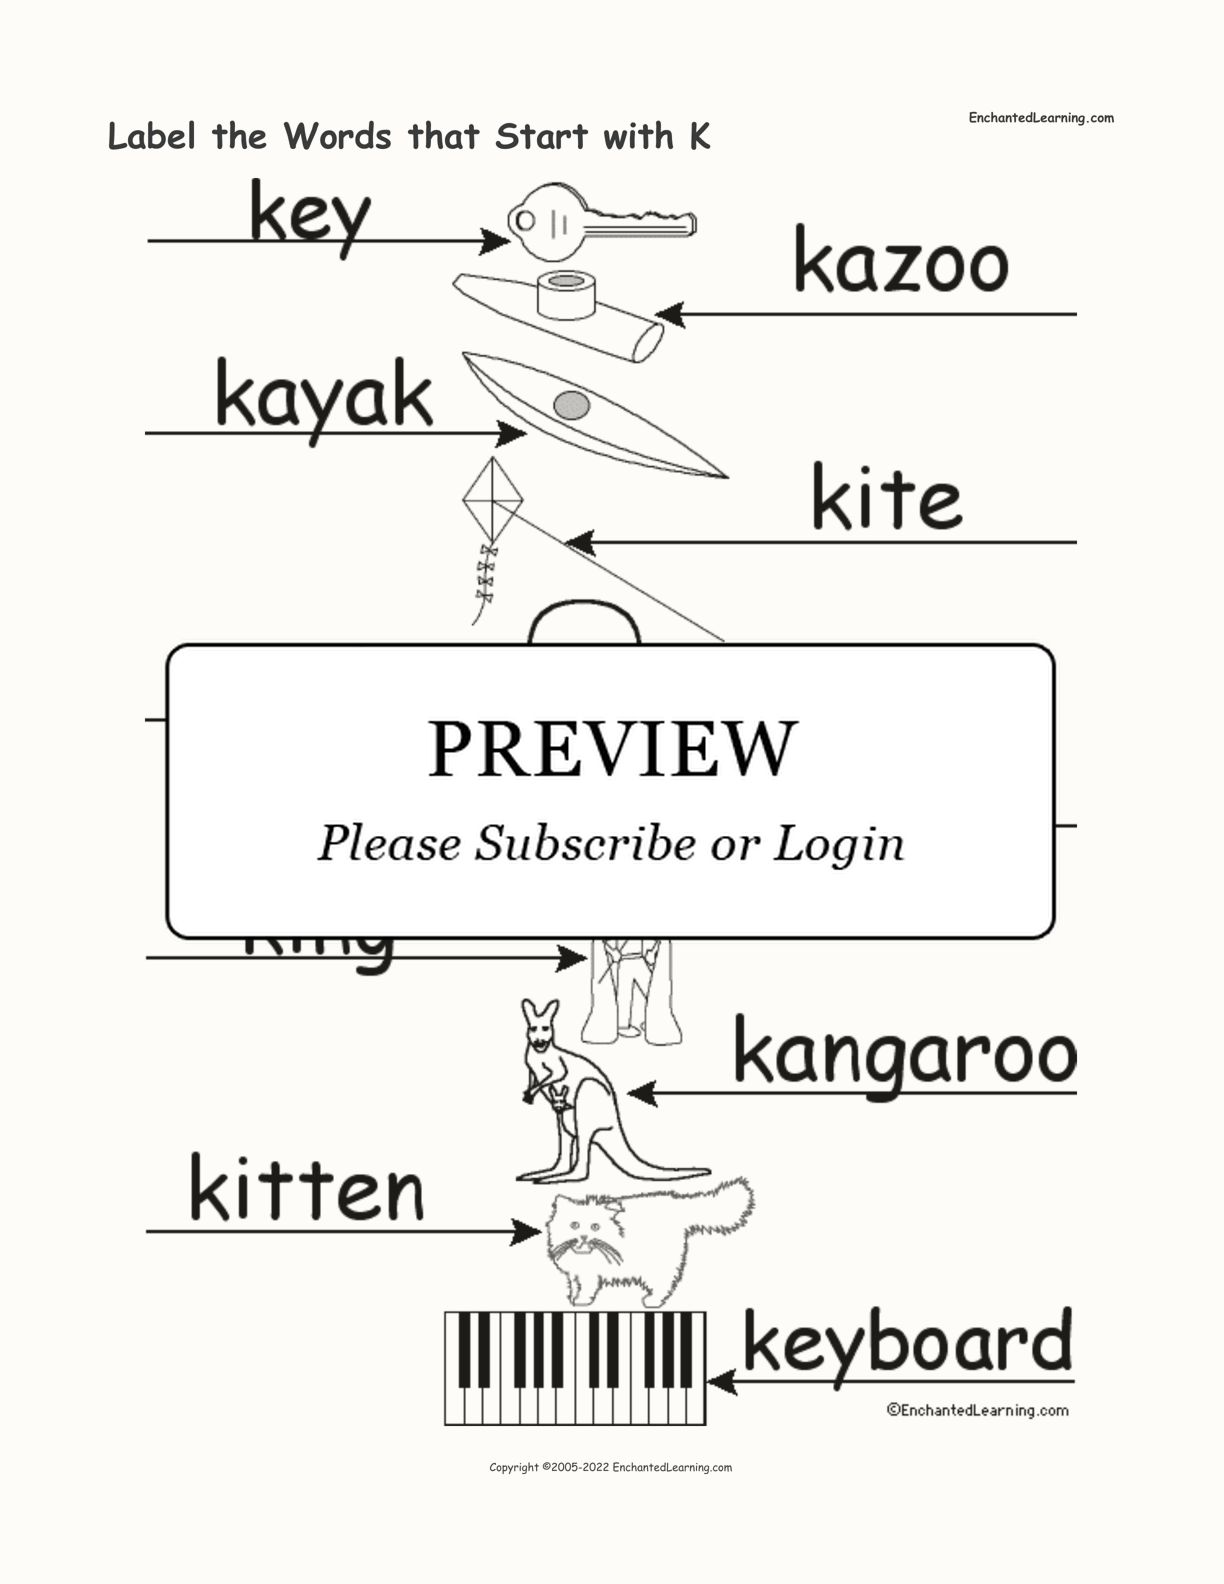 Label The Words That Start With K